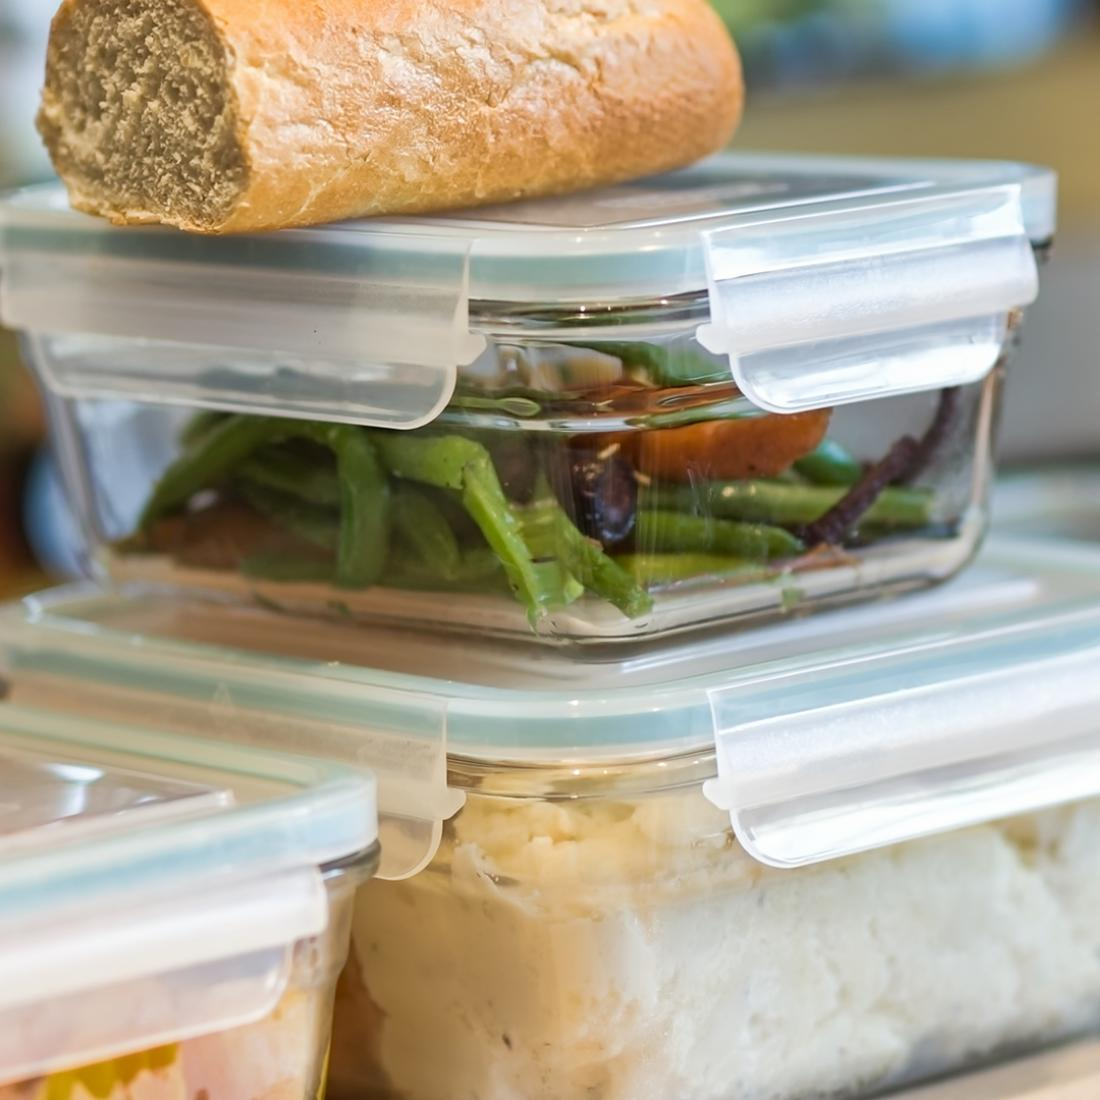 leftovers in reusable containers